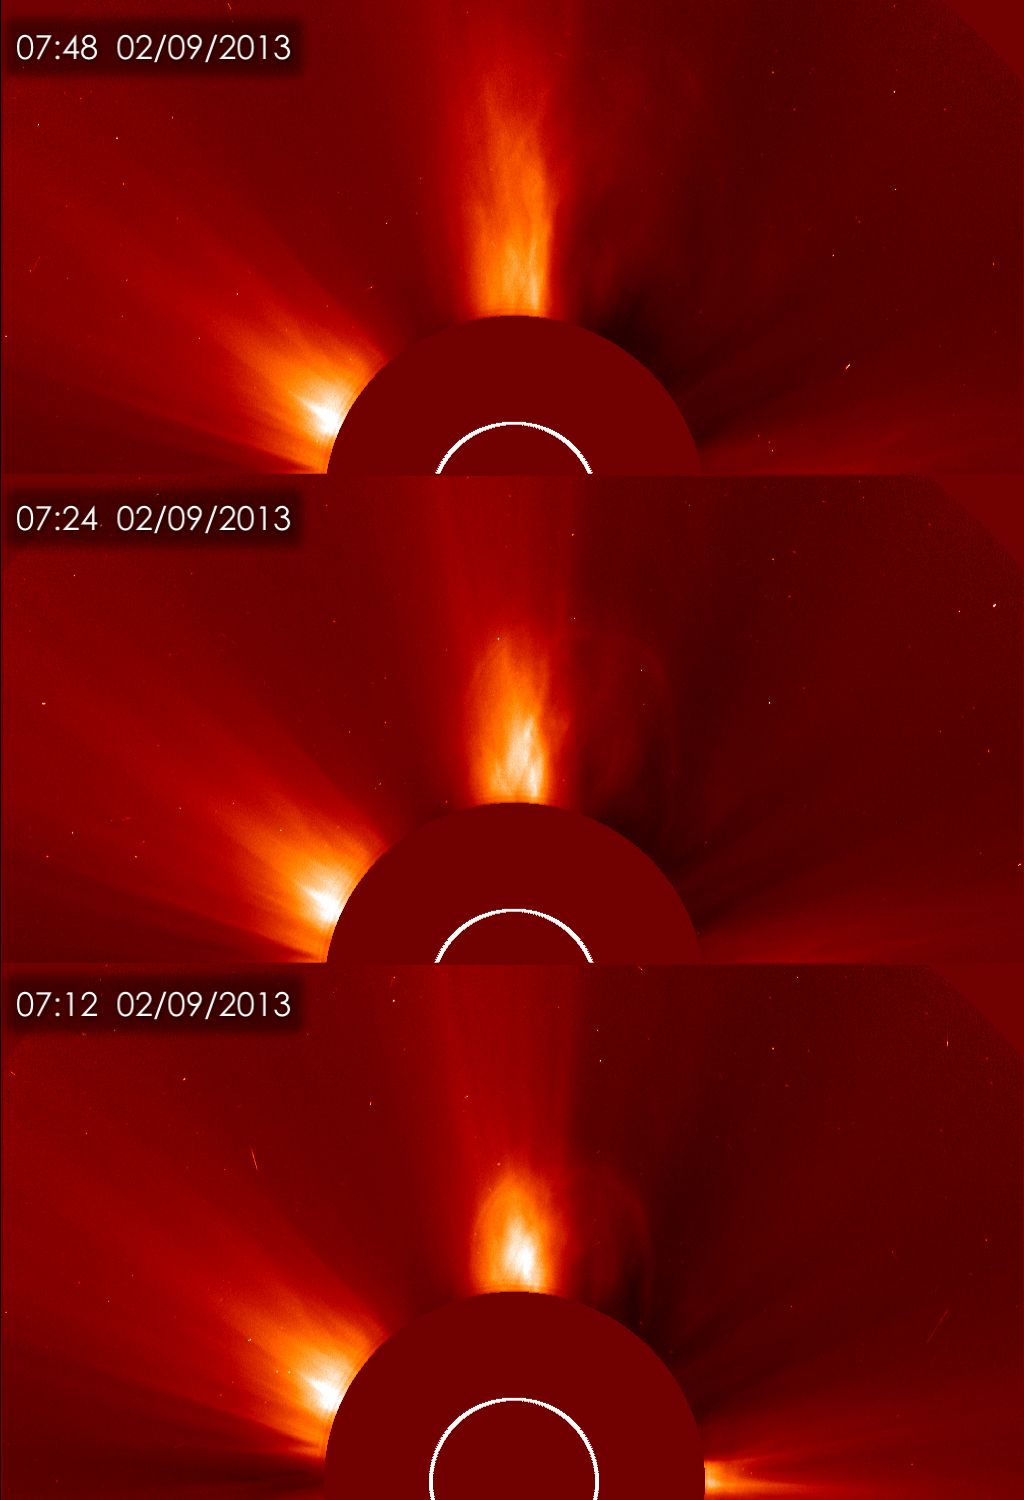 Solar Flare and Coronal Mass Ejection of Feb. 9, 2013